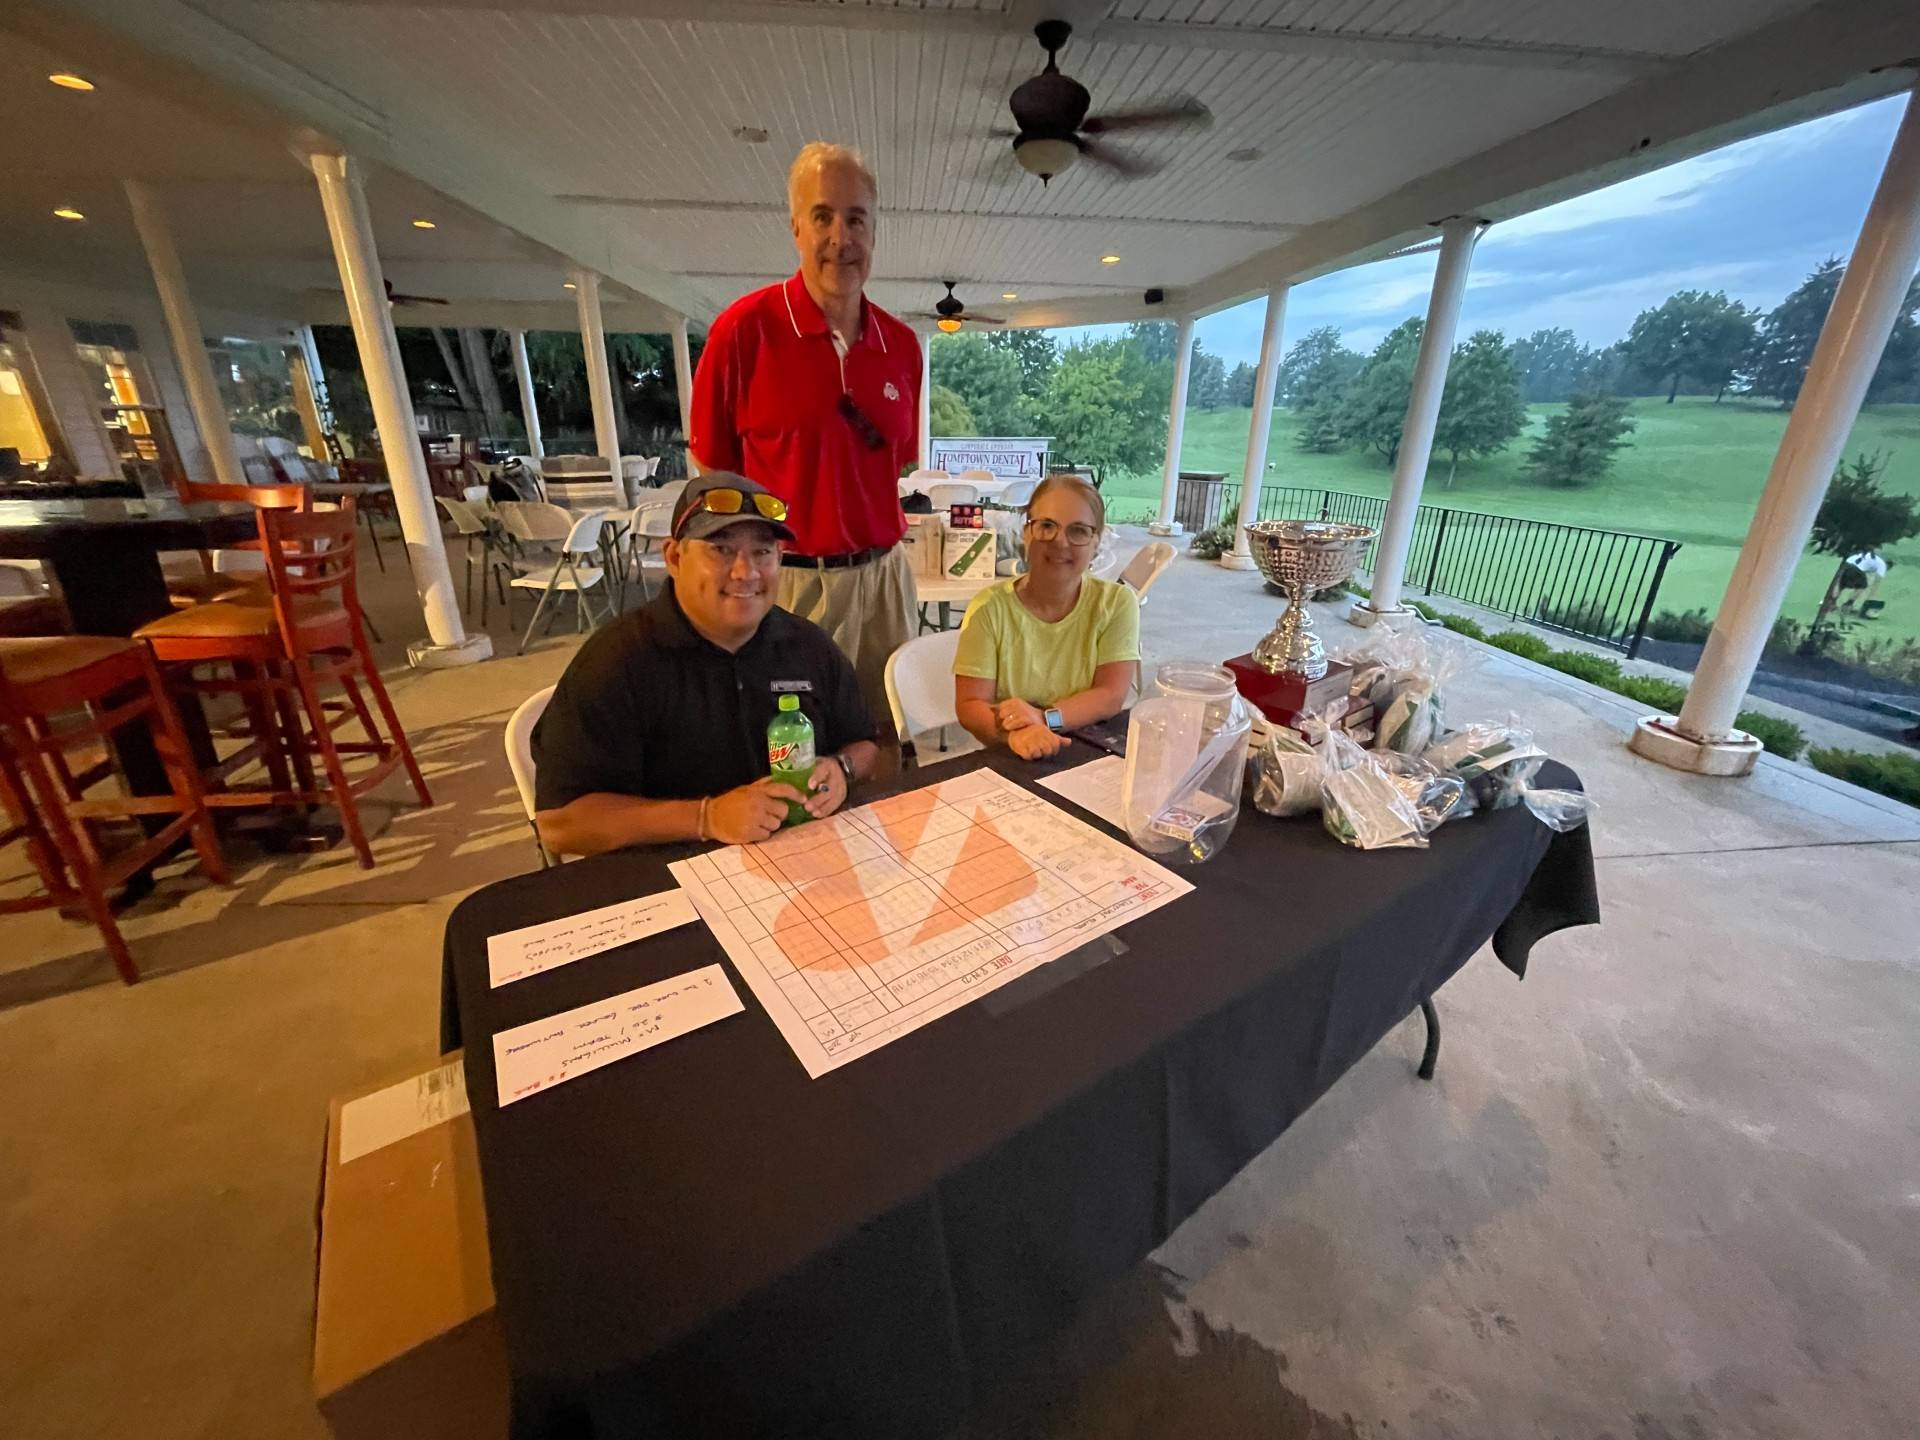 2021 Golf Outing registration table